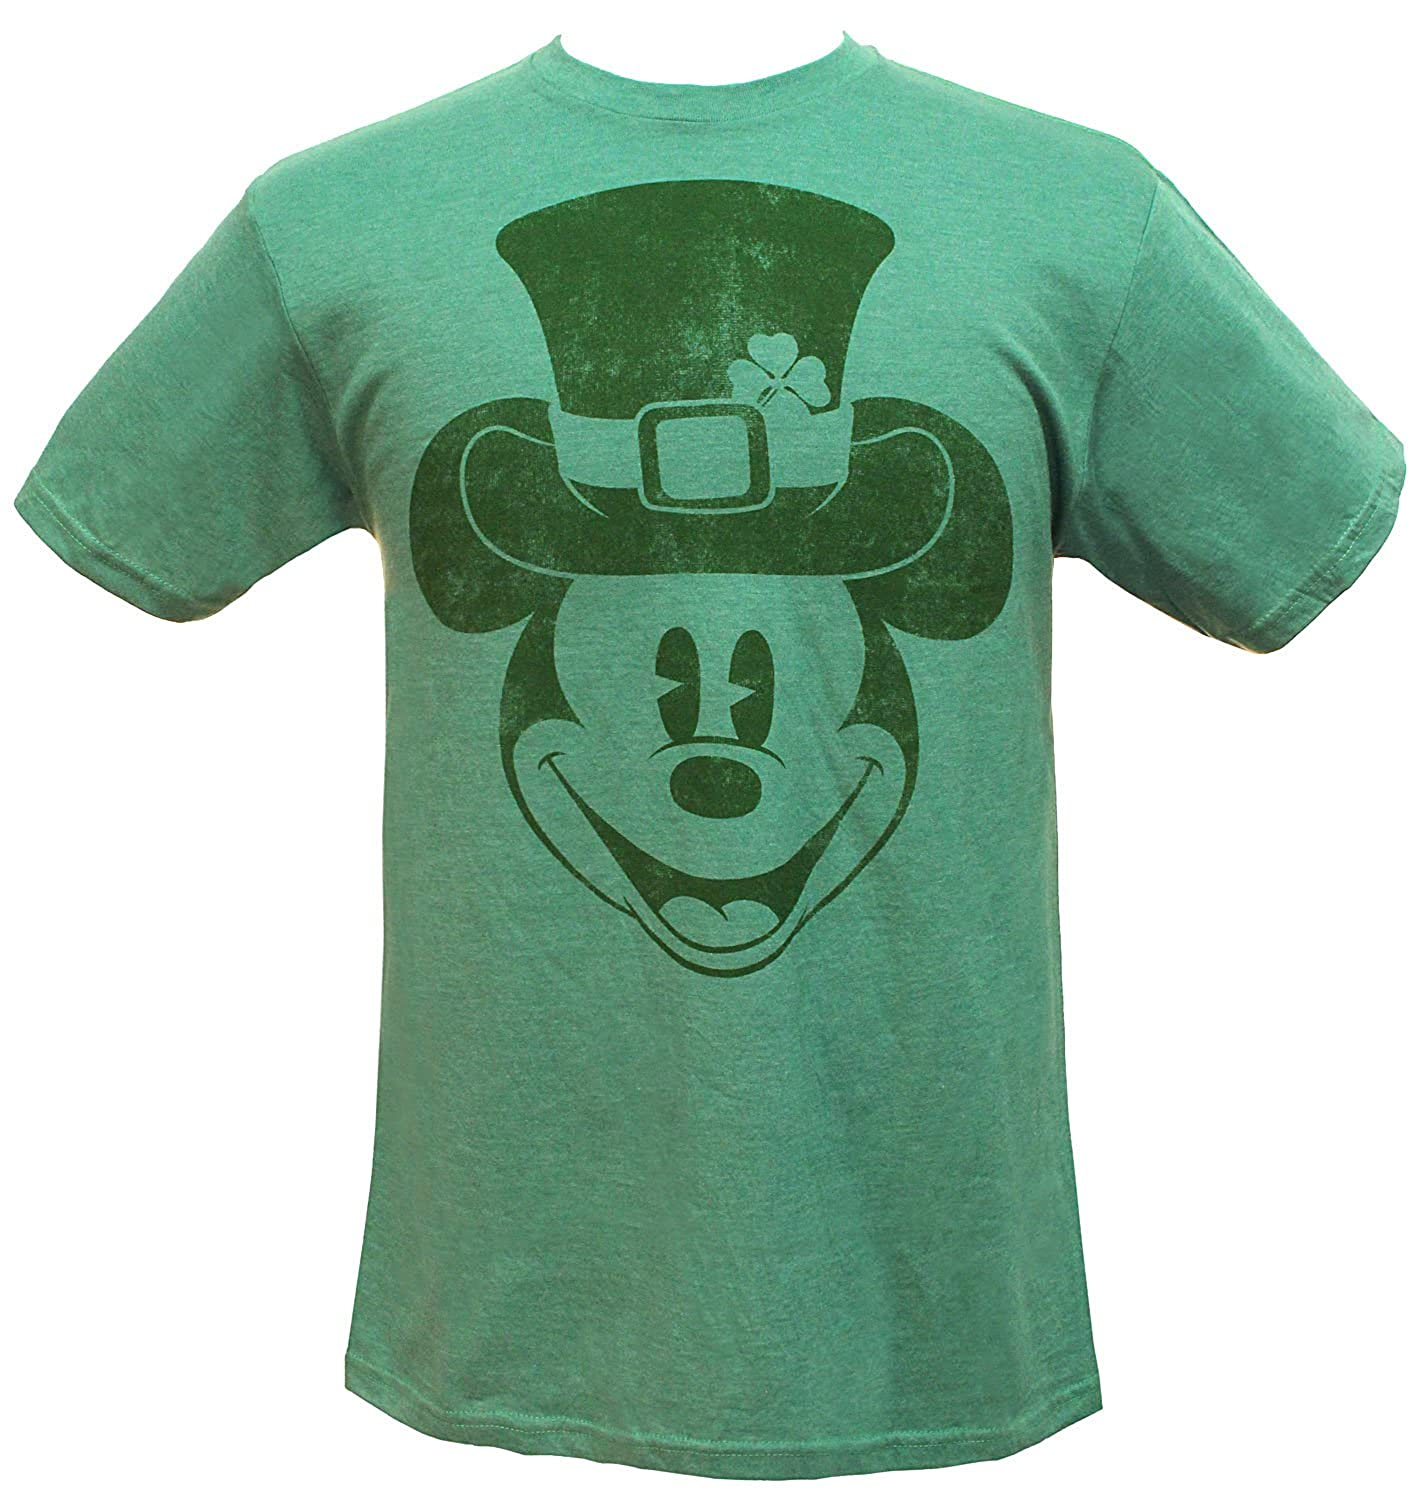 f5a55f463 Amazon.com: Disney Men's Mickey Mouse Leprechaun Hat Distressed Graphic  Shamrock Heather T-Shirt: Clothing